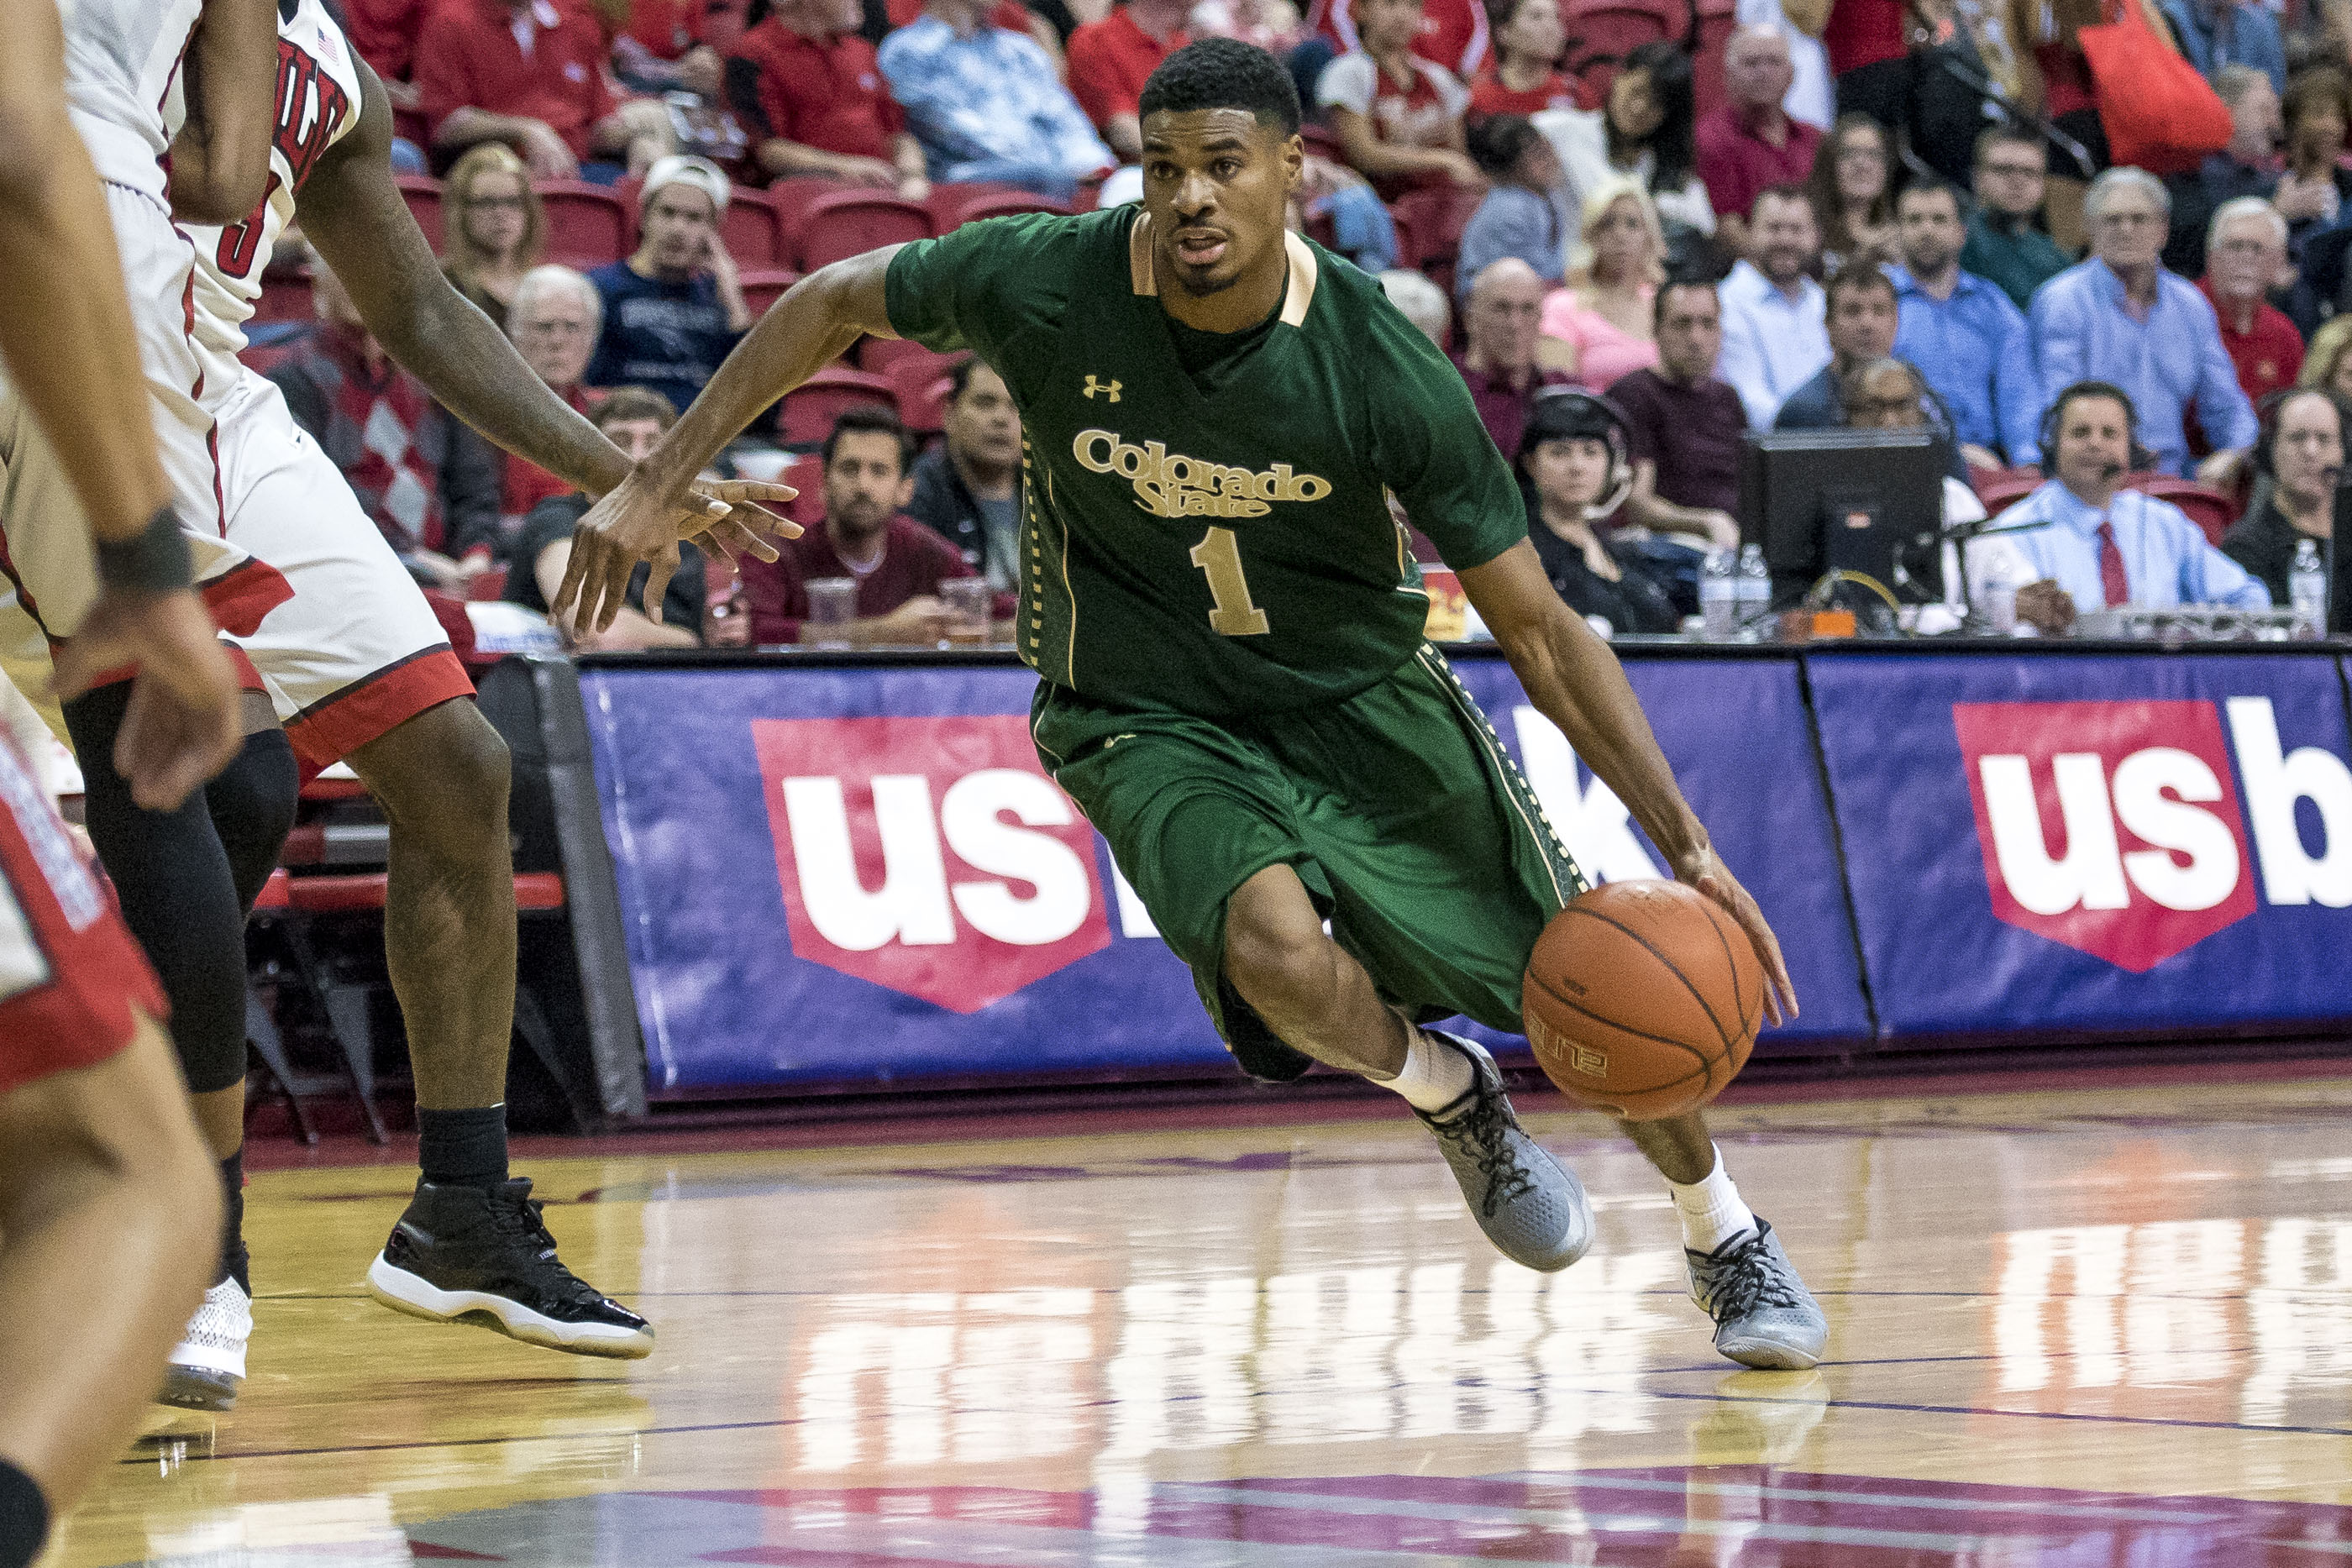 Antwan Scott plays his final game at Moby Arena